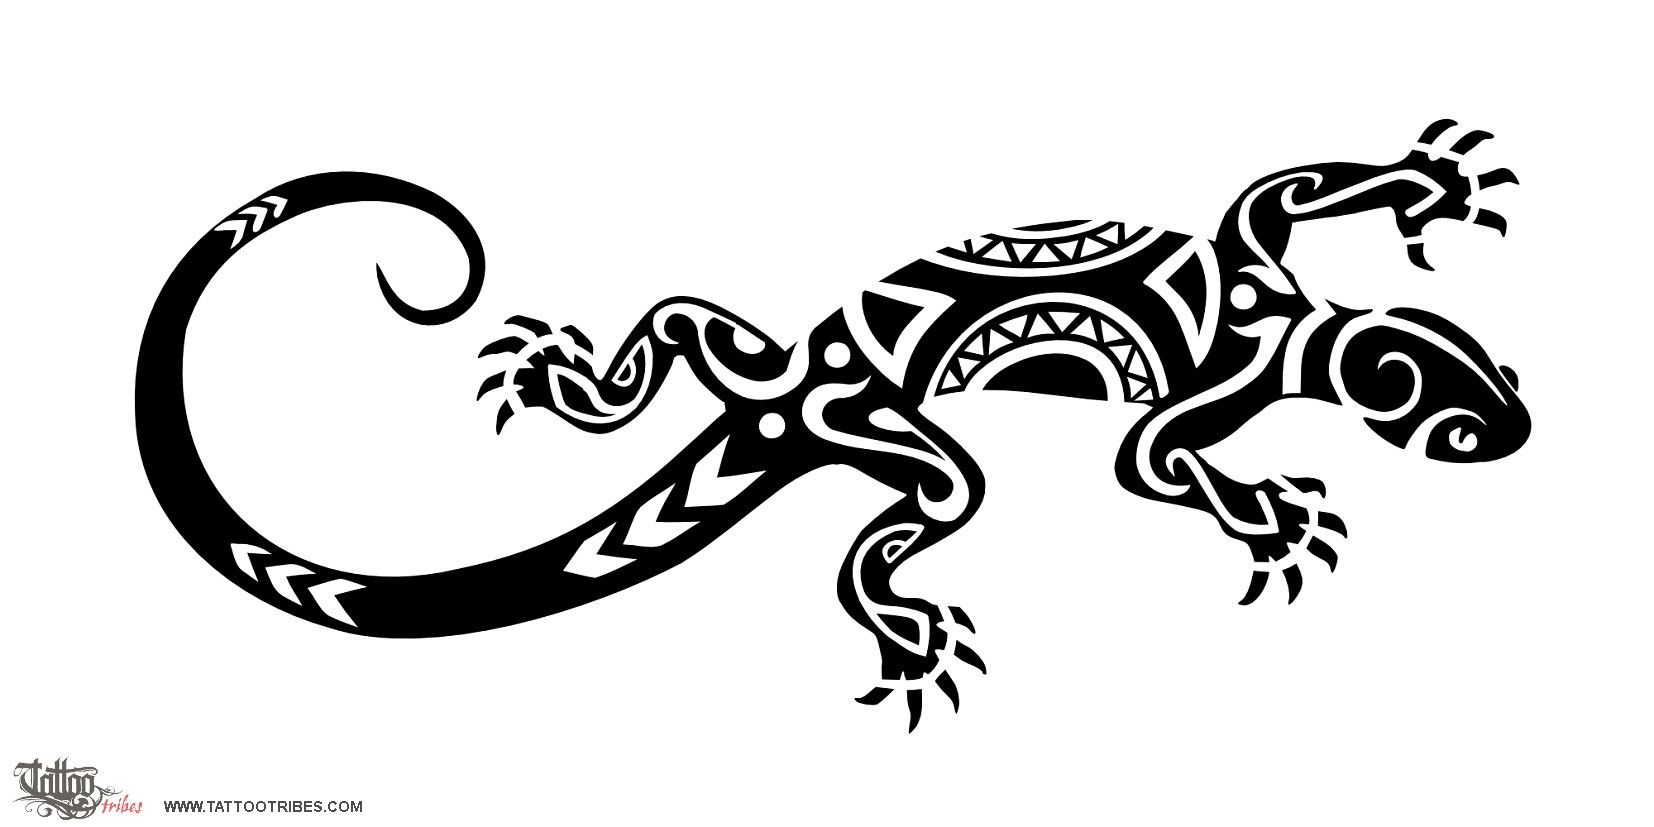 Lizard Lizards Symbolize Good Luck And Are Spiritual Guides